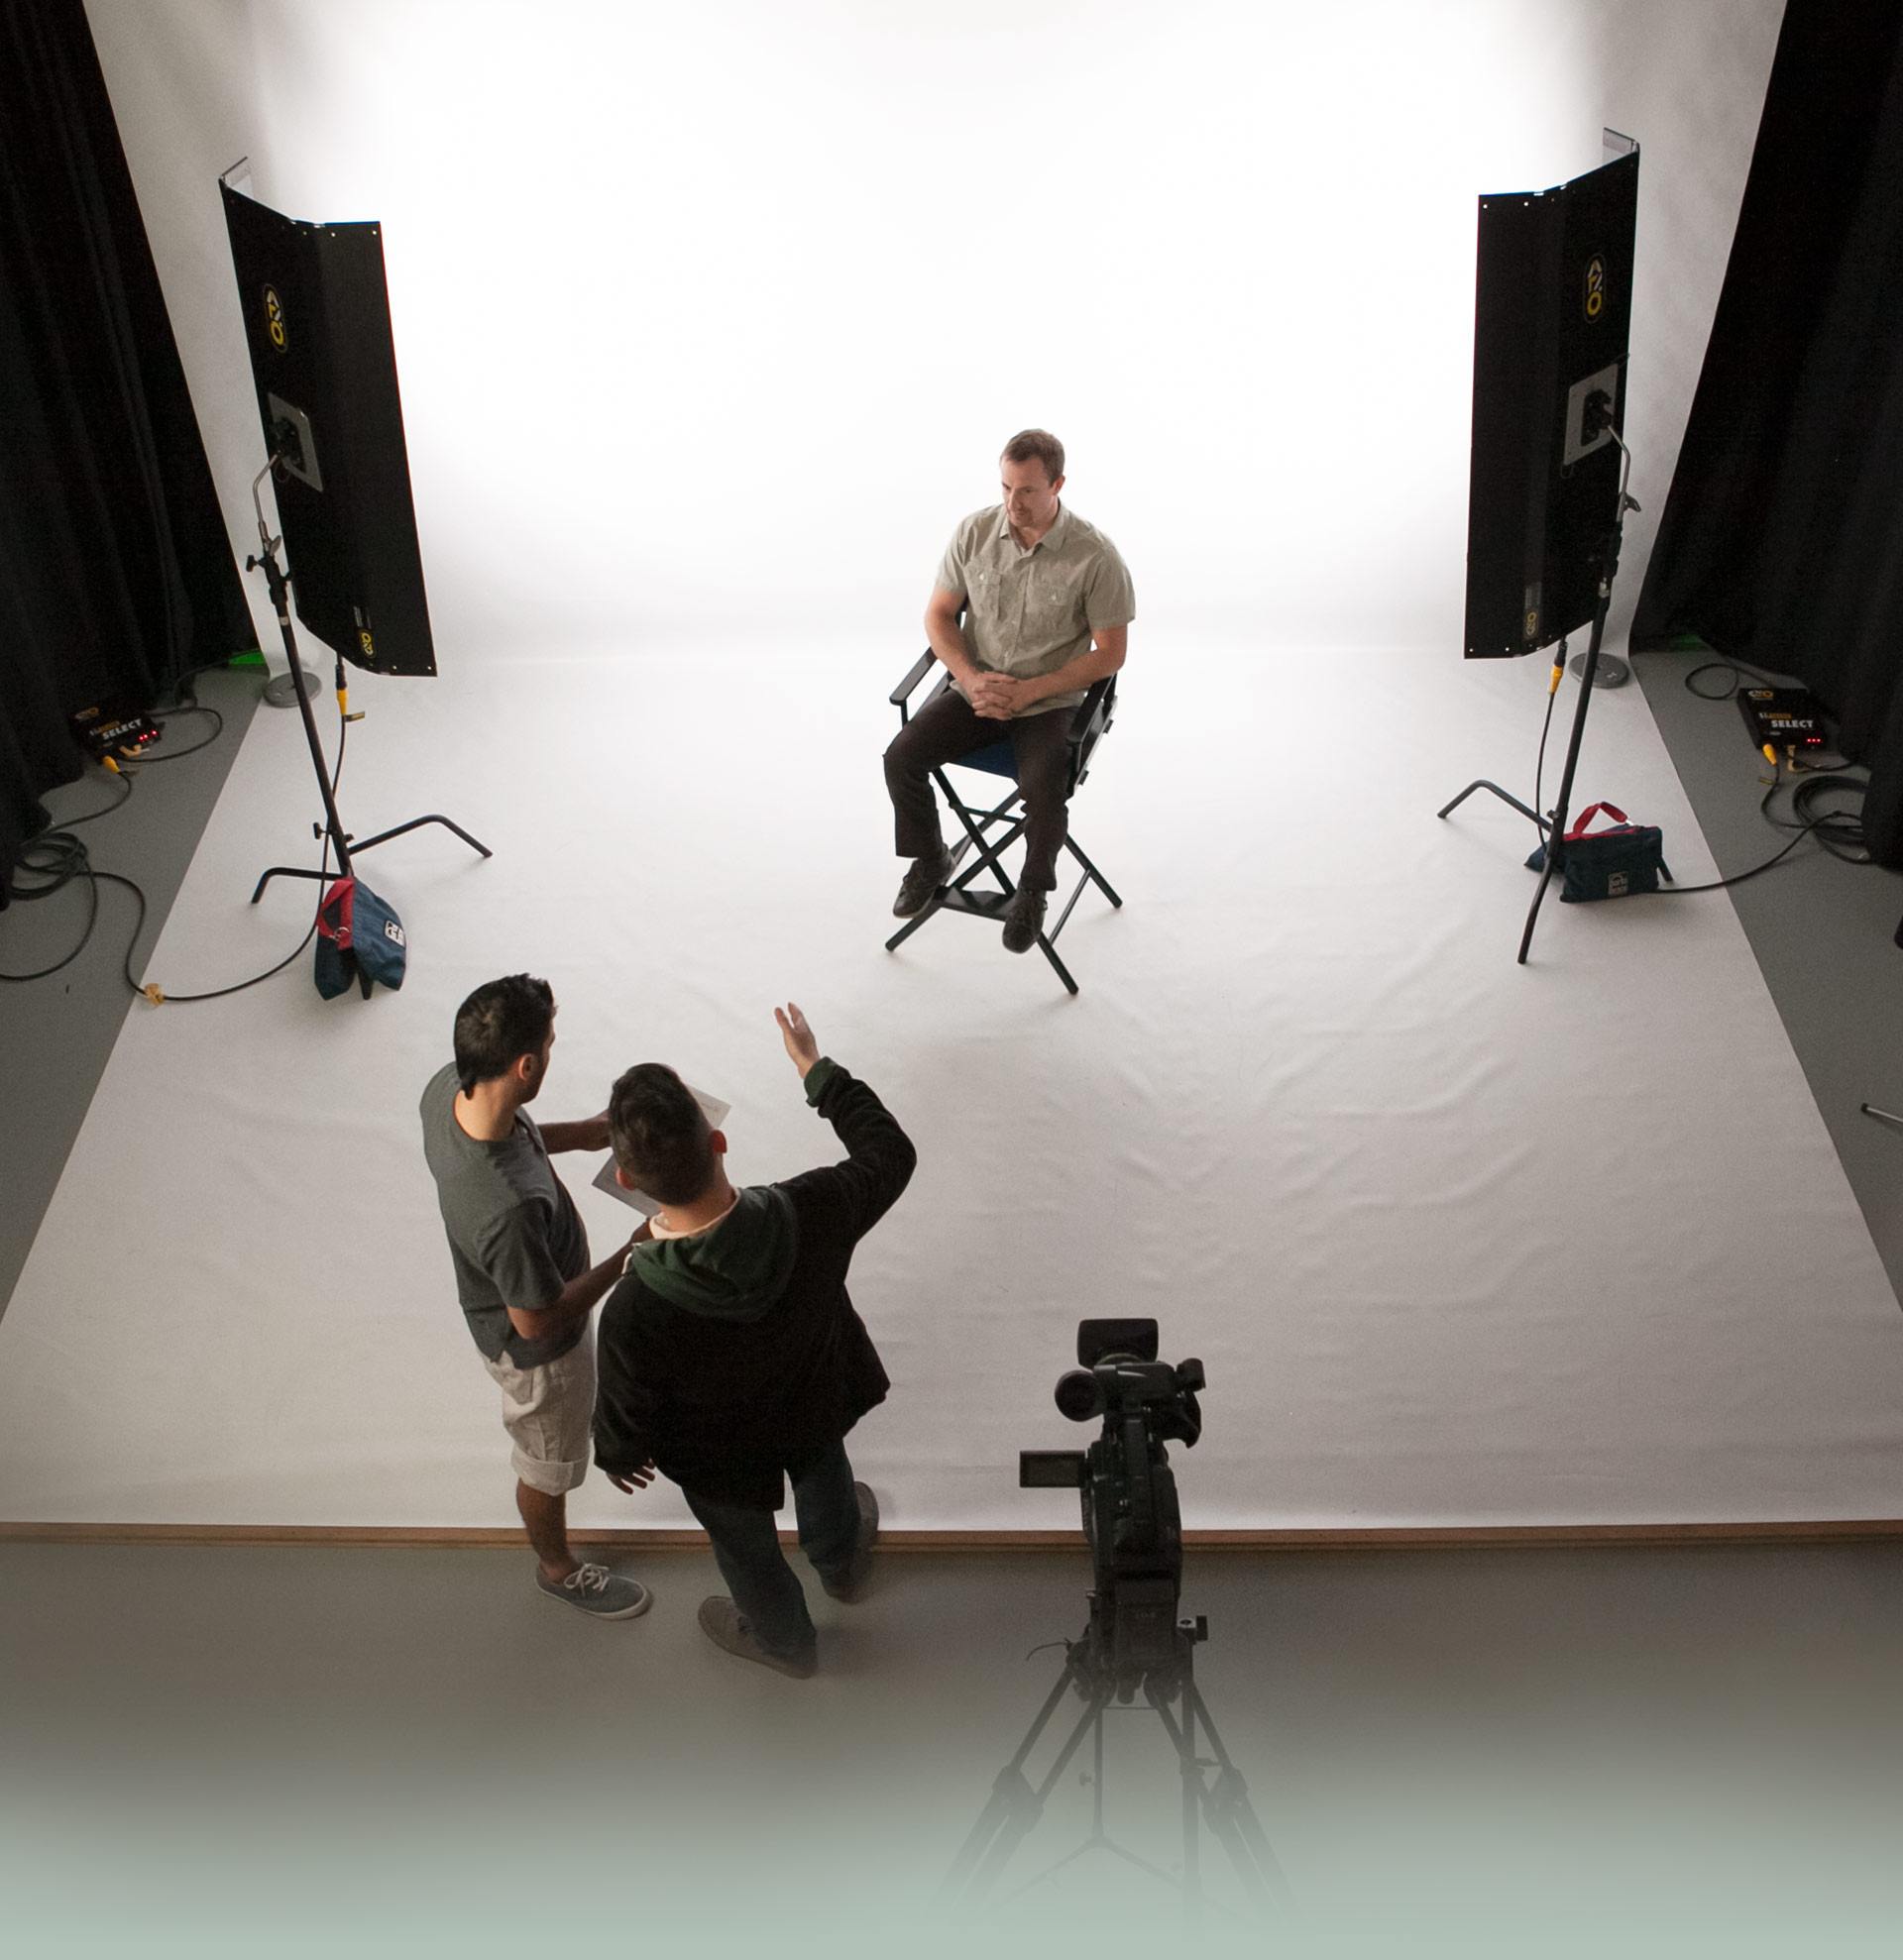 Kelowna Video Production Studio